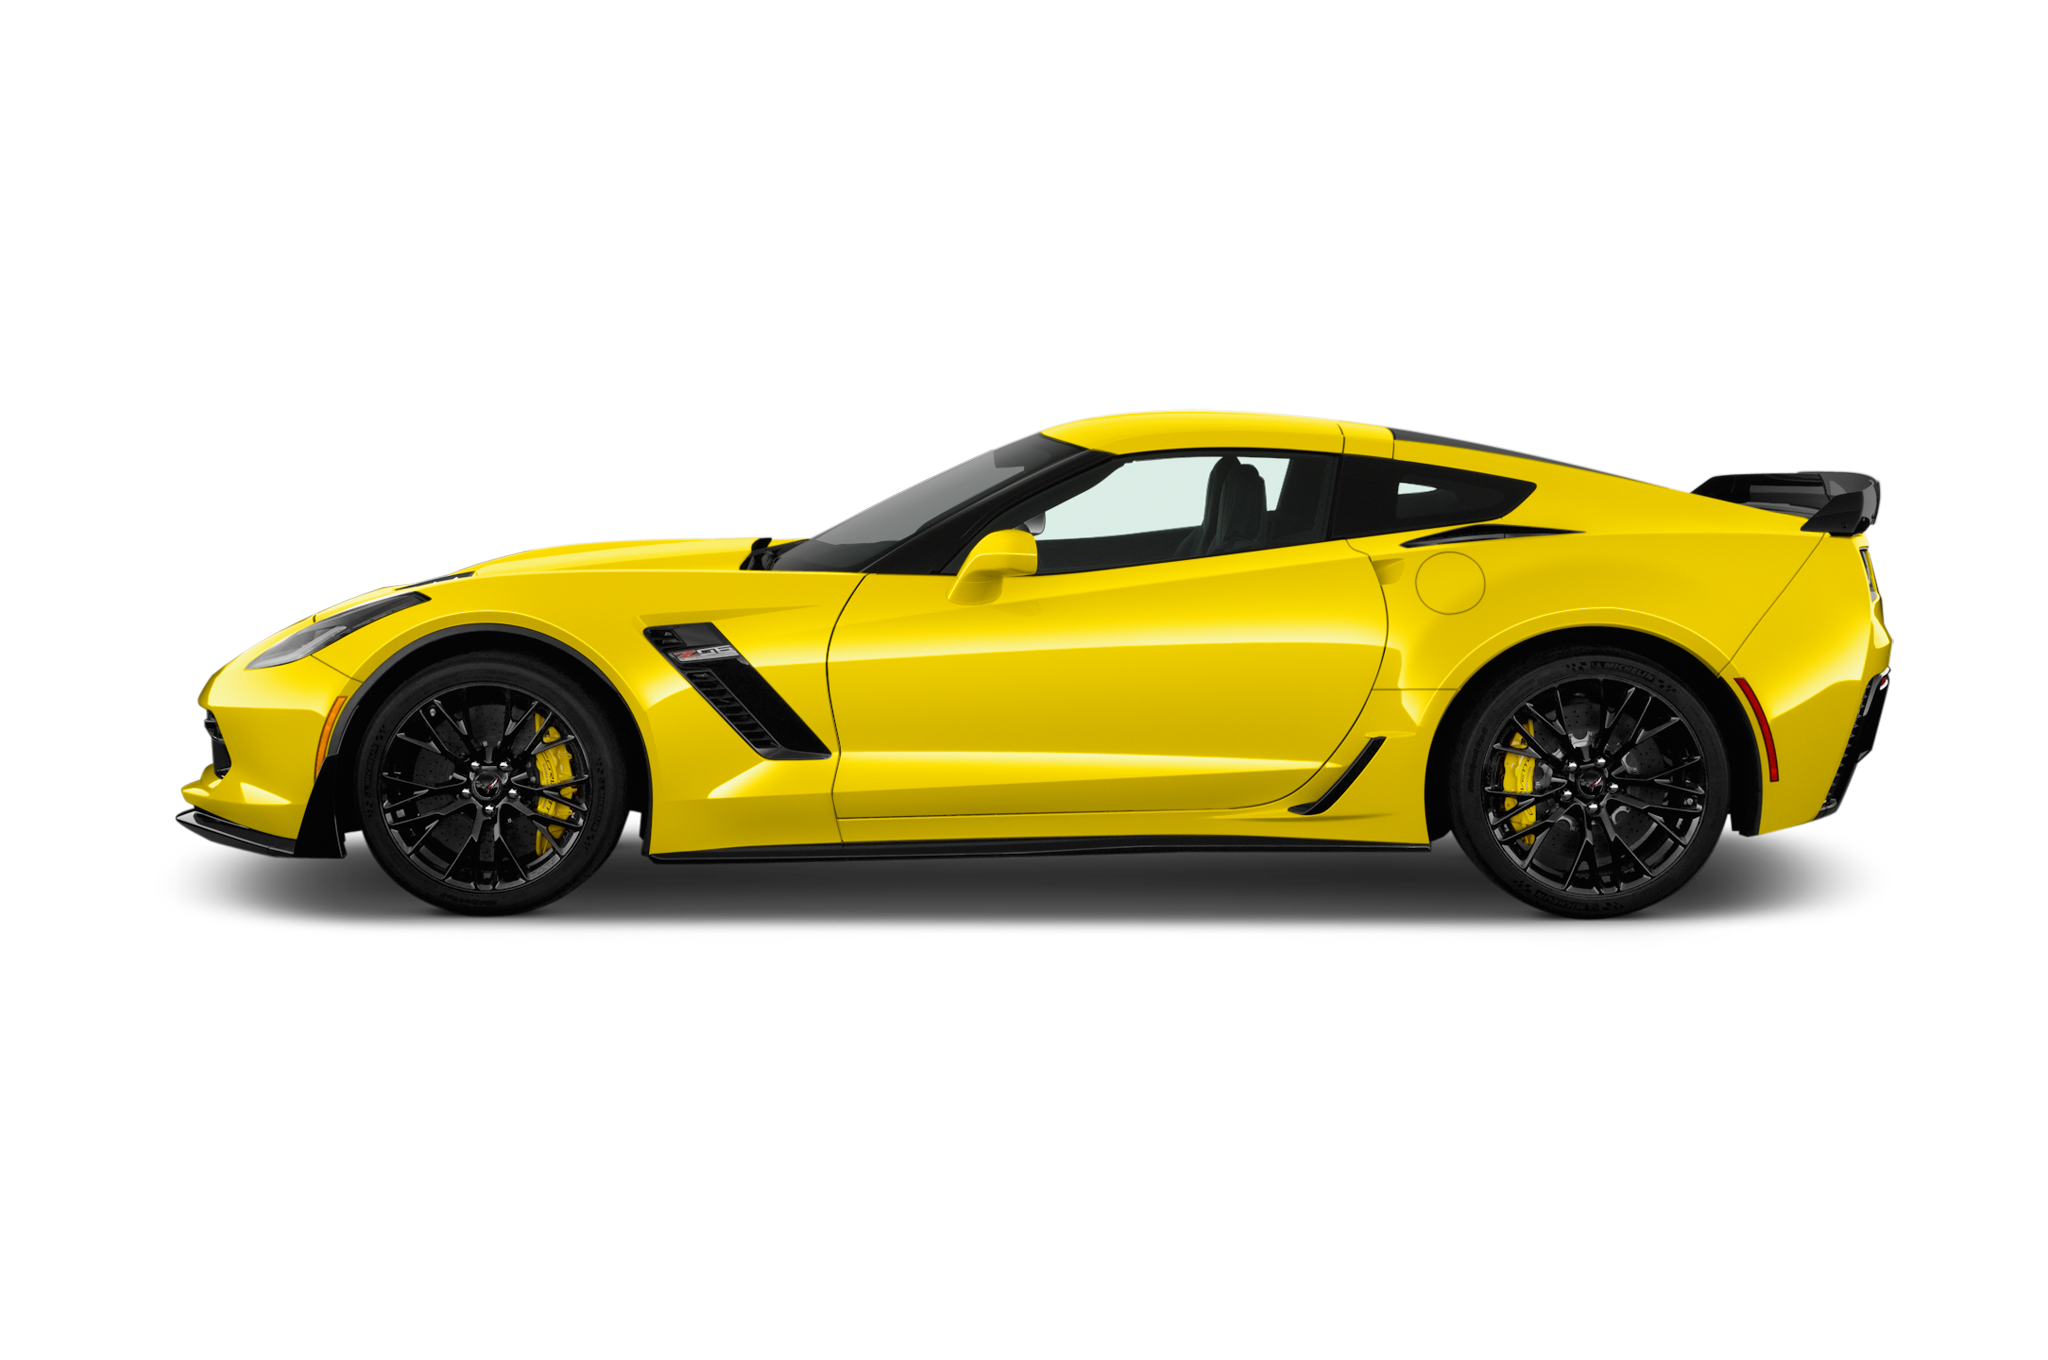 Chevrolet clipart yellow car Png Chevrolet Chevrolet Car PNG